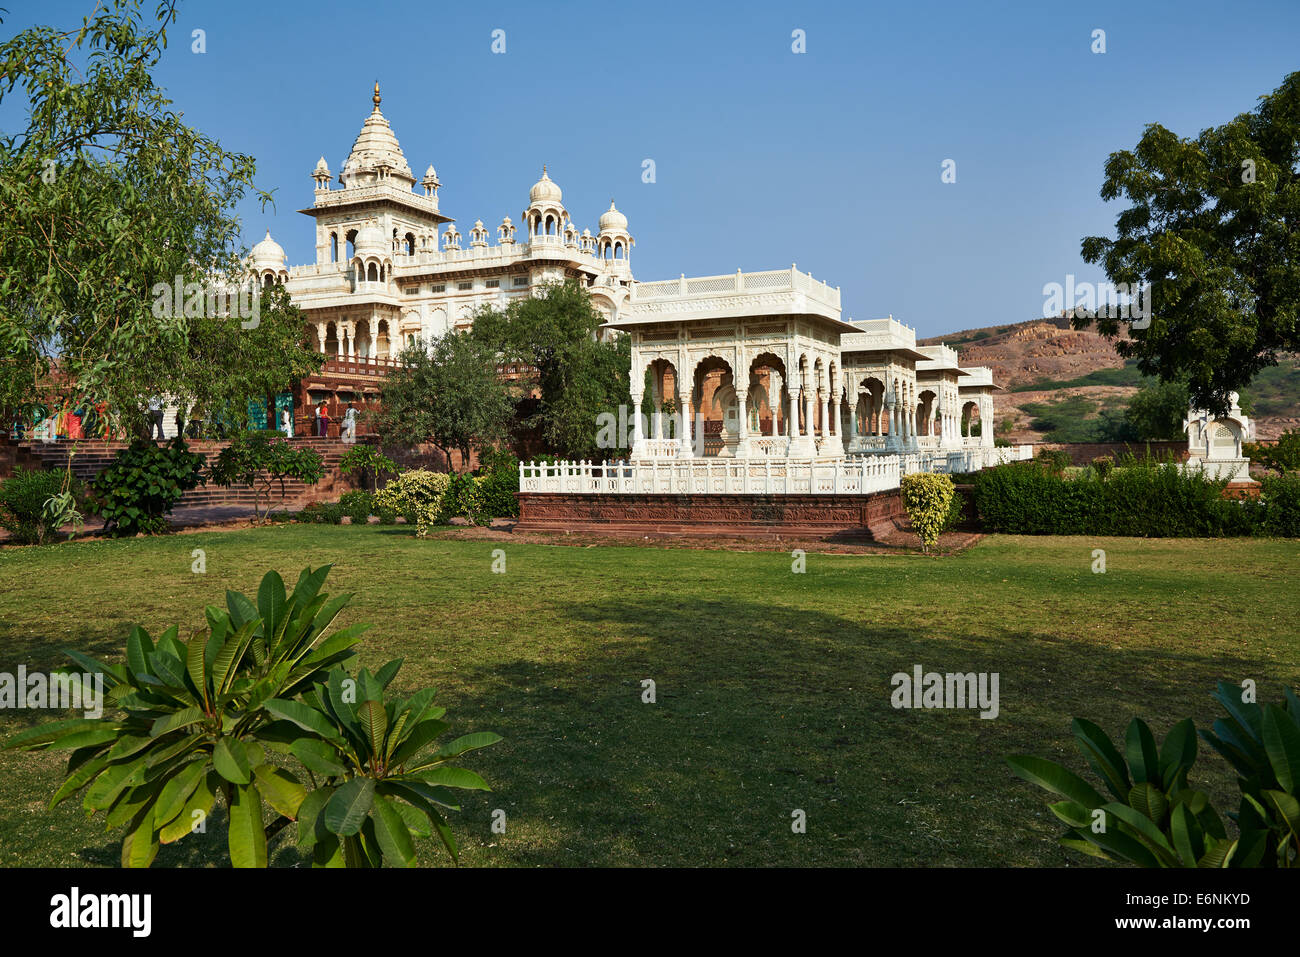 The Jaswant Thada Mausoleum, made from white marble,  Jodhpur, Rajasthan, India - Stock Image